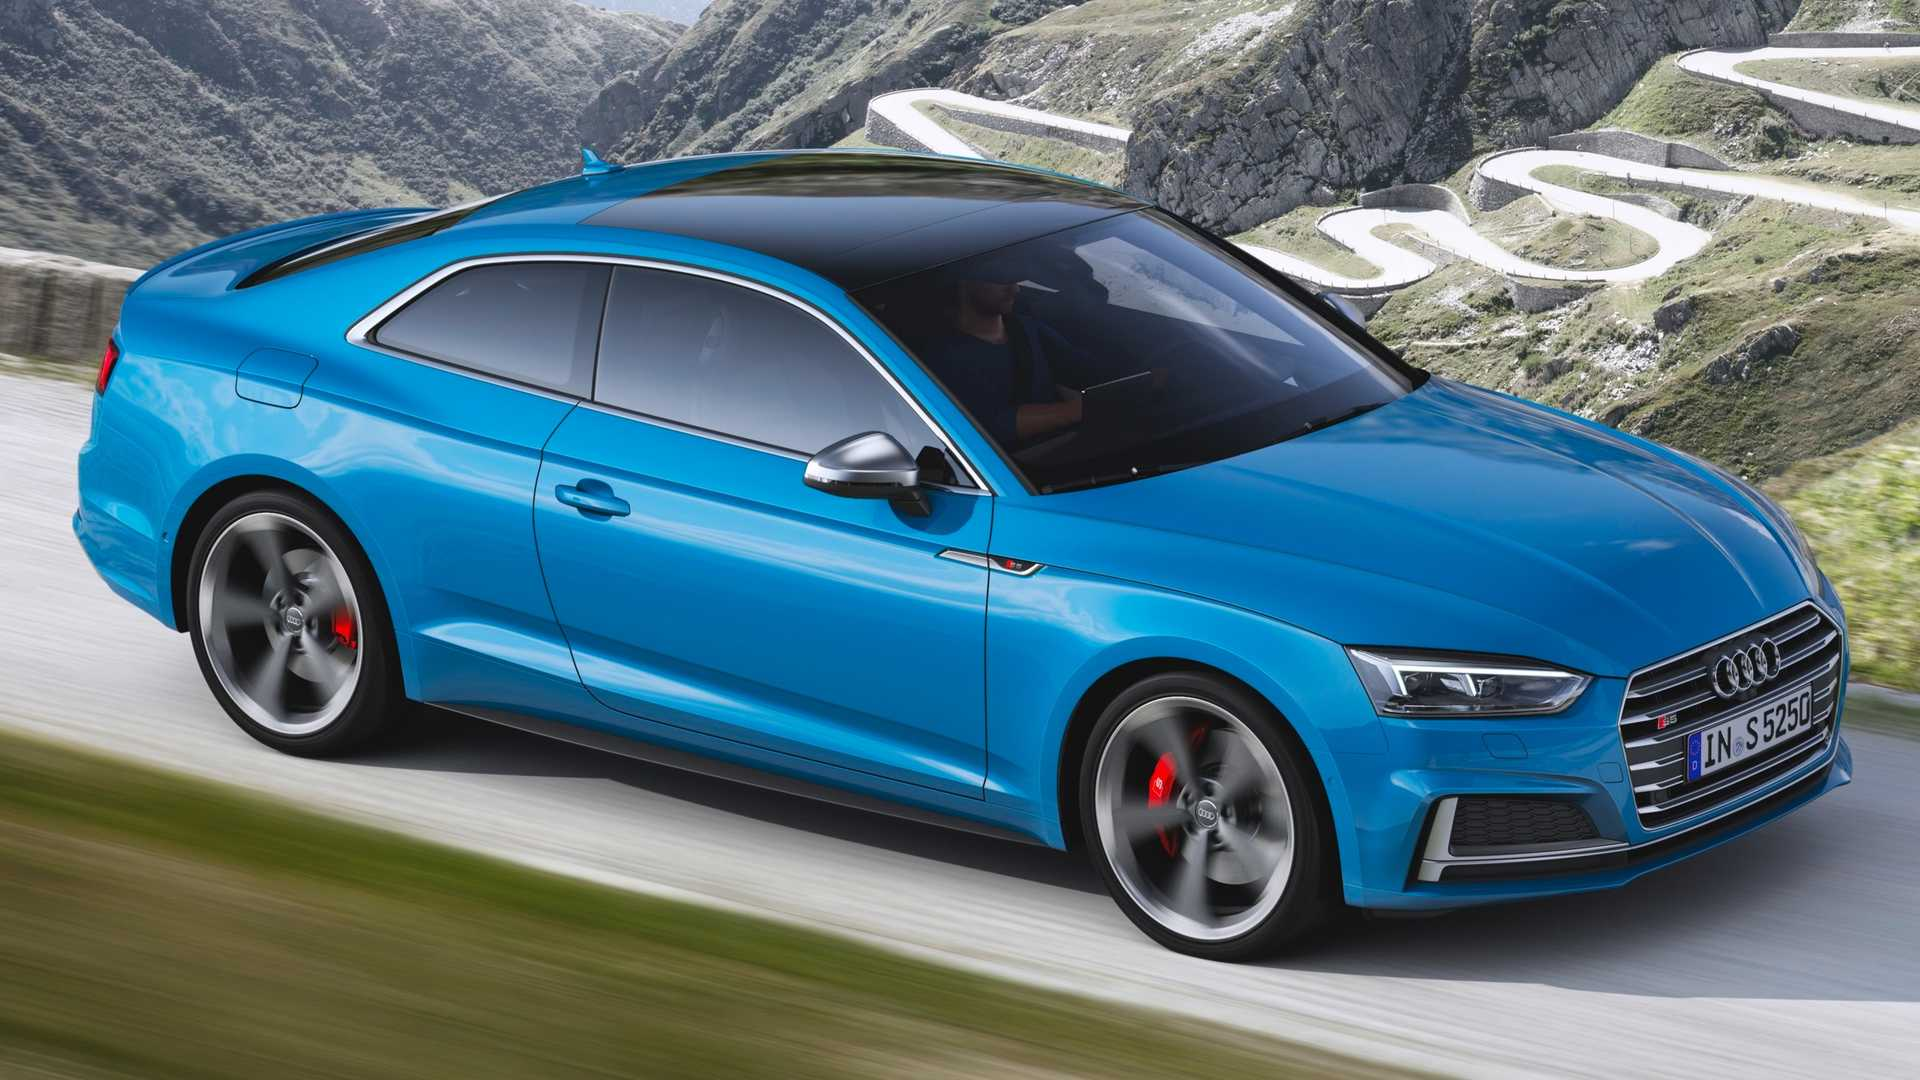 2019 Audi S5 Coupe Tdi Front Three Quarter Wallpapers 4 Newcarcars